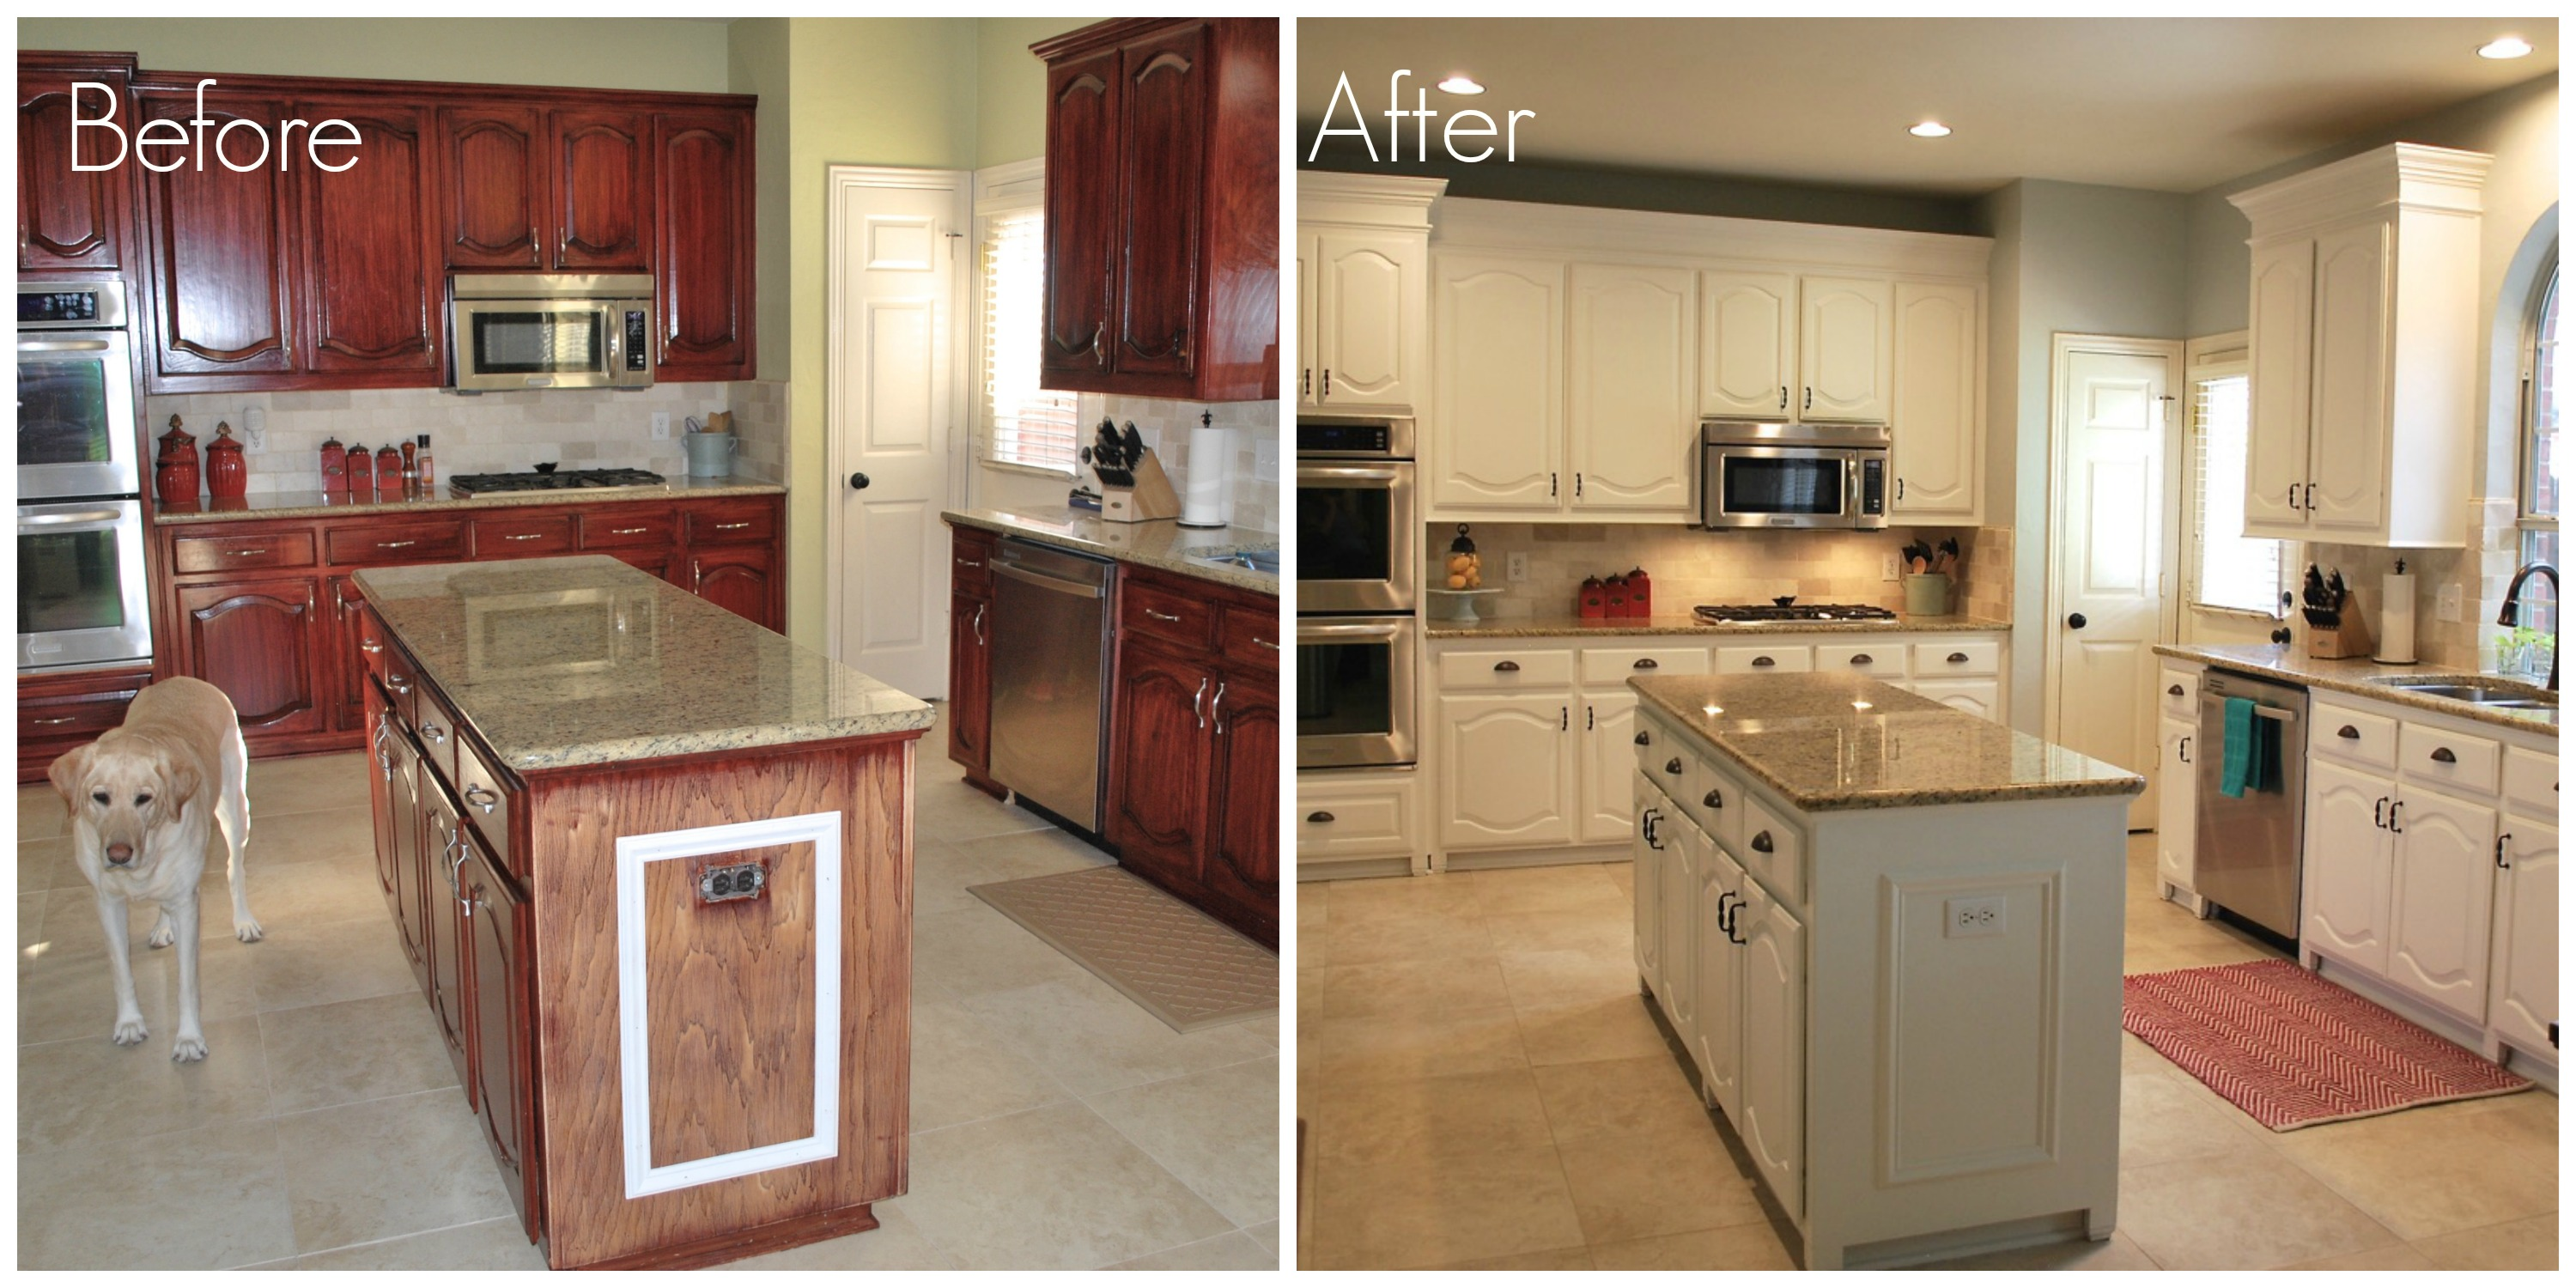 Painting Kitchen Cabinets Black Before And After Home Photos By